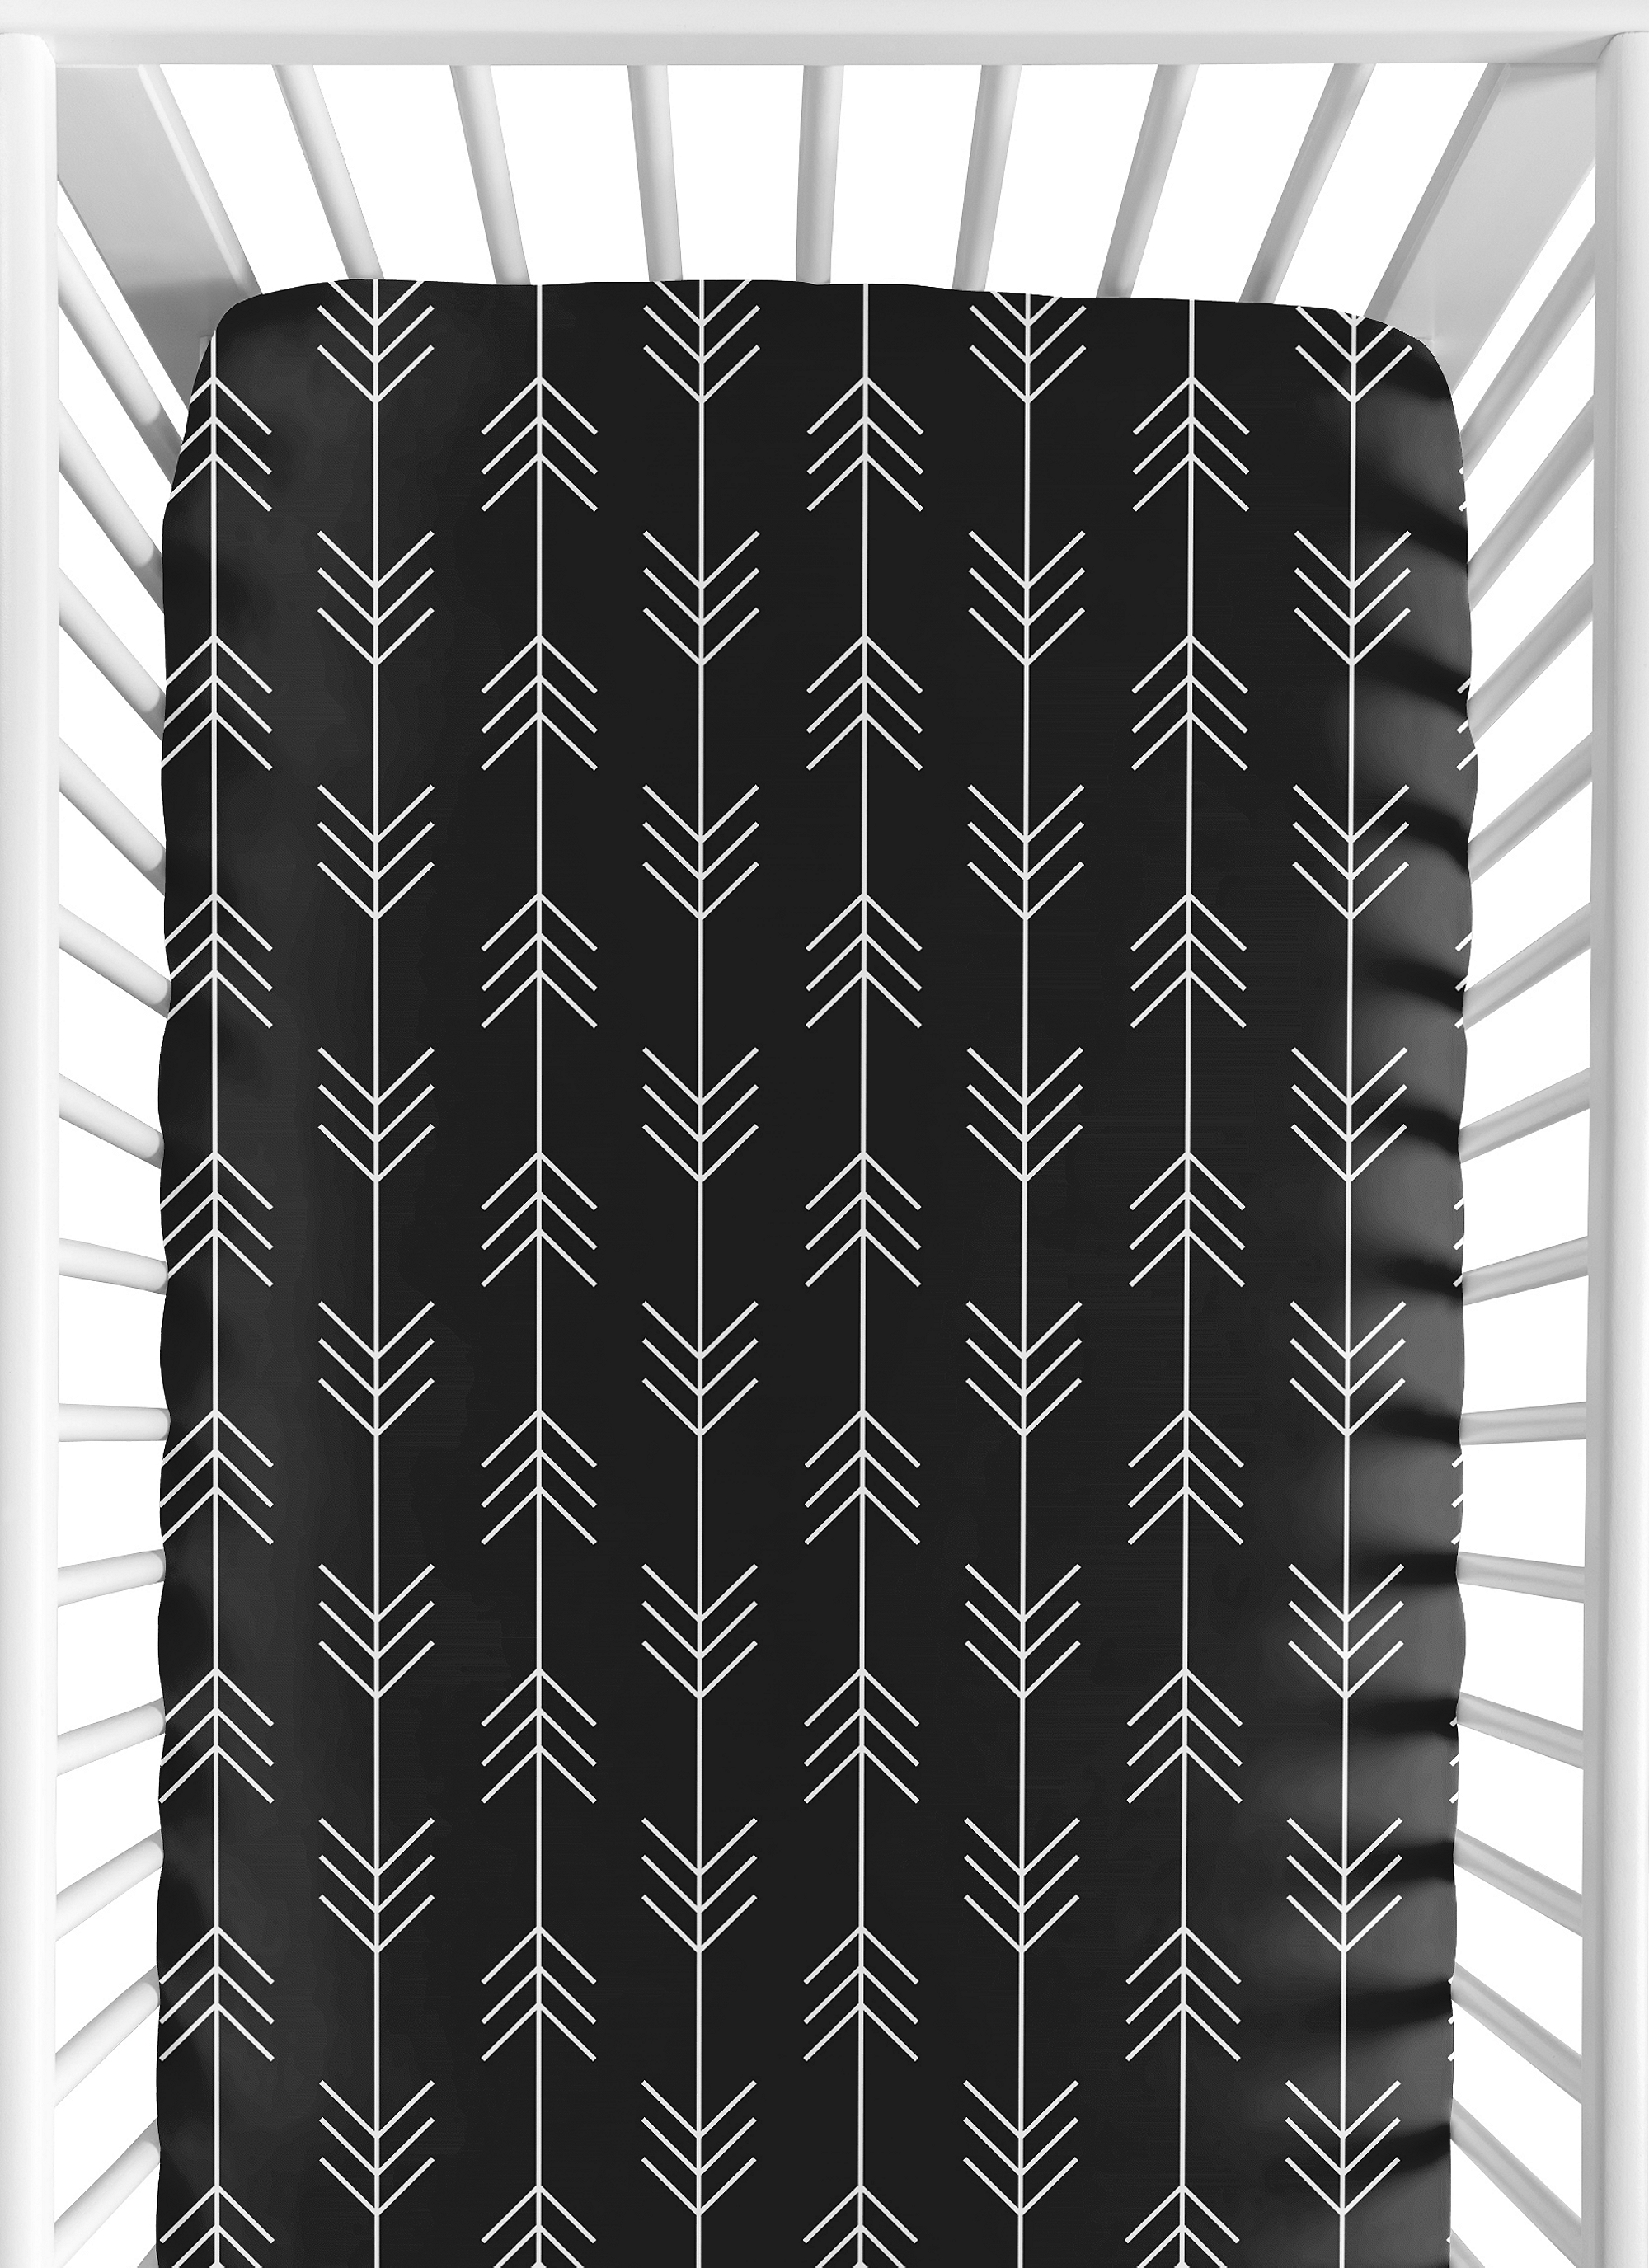 Sweet Jojo Designs Black and White Woodland Arrow Pleated Toddler Bed Skirt Dust Ruffle for Rustic Patch Collection